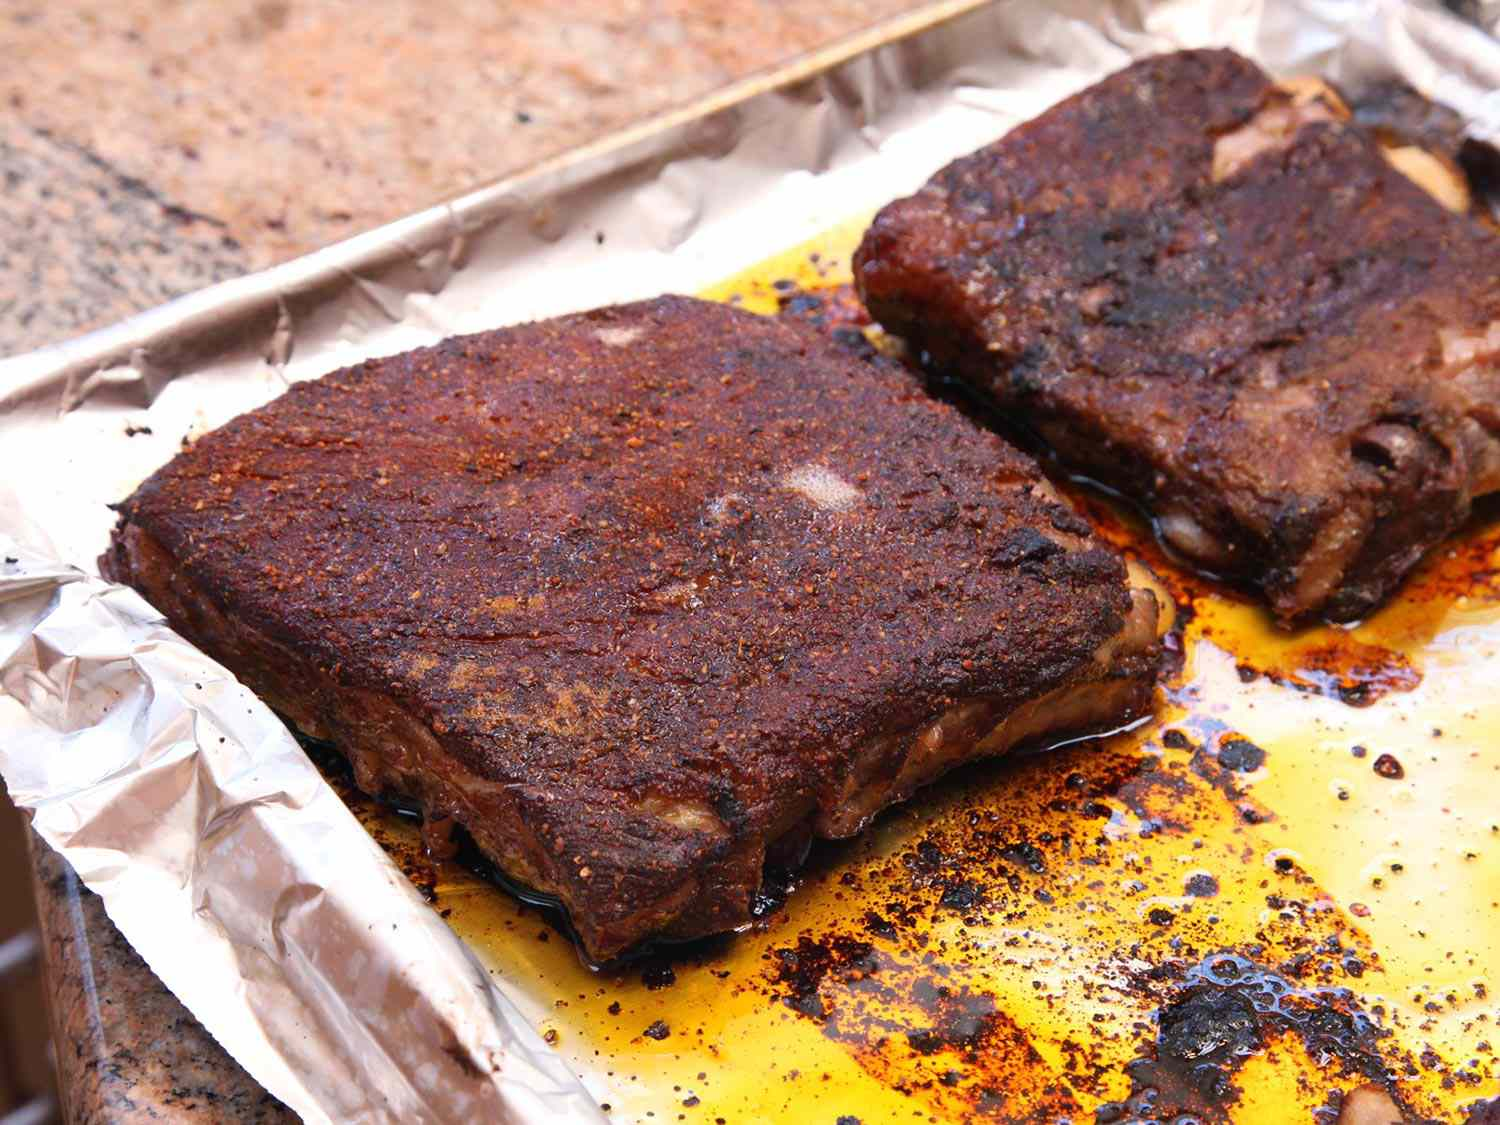 Pork ribs cooked sous vide, coated in dry rub, on a foil-lined baking sheet